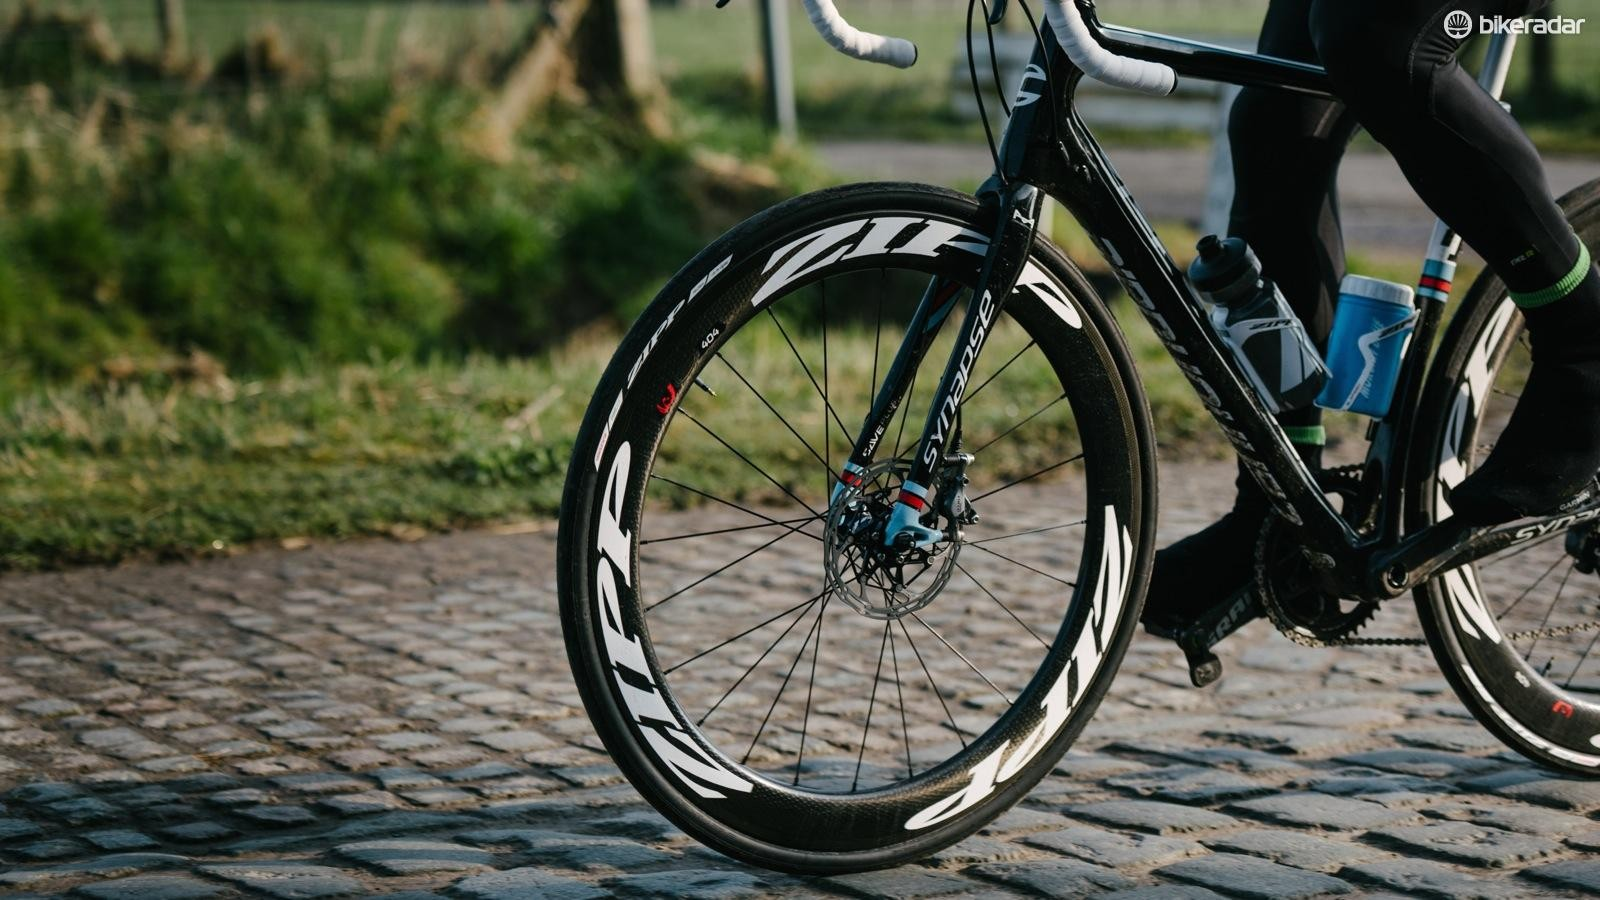 Disc brakes are increasingly found on endurance bikes